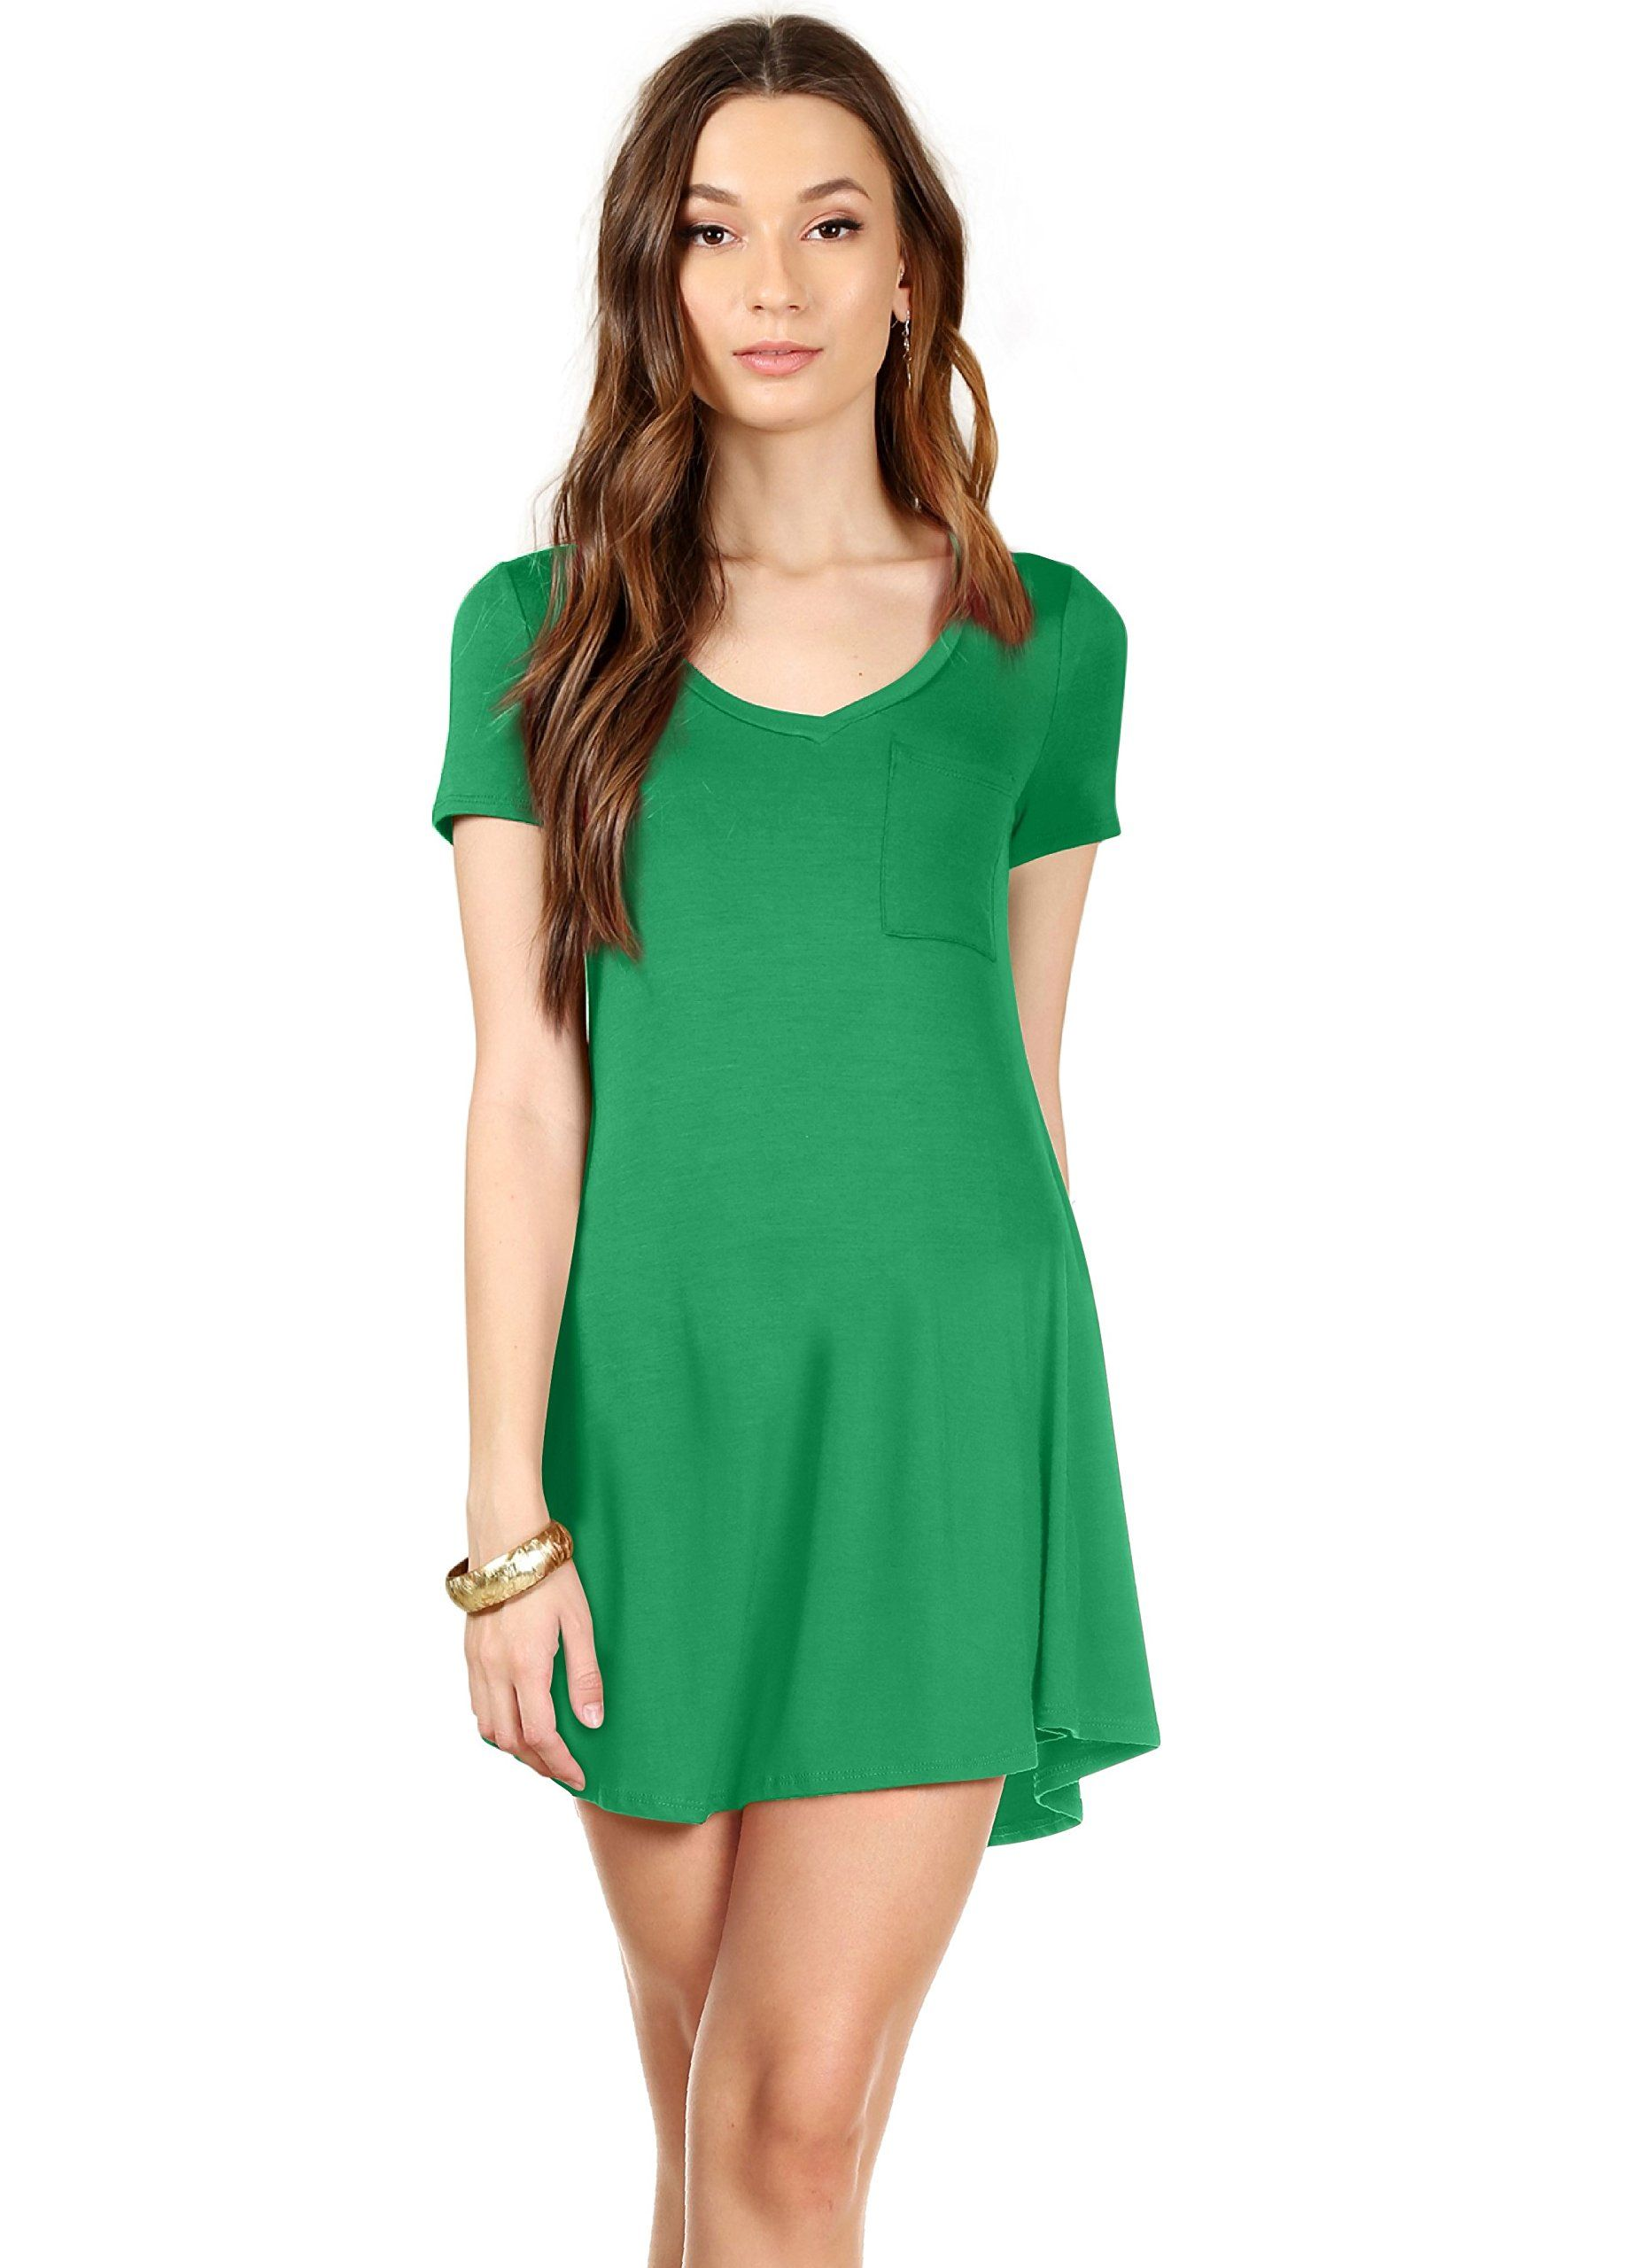 85a44778aee Kelly Green V Neck Tunic T Shirt Dress For Women Regular and Plus Size  Casual Summer Dress Kelly Green Small ** More info could be found at the  image url.